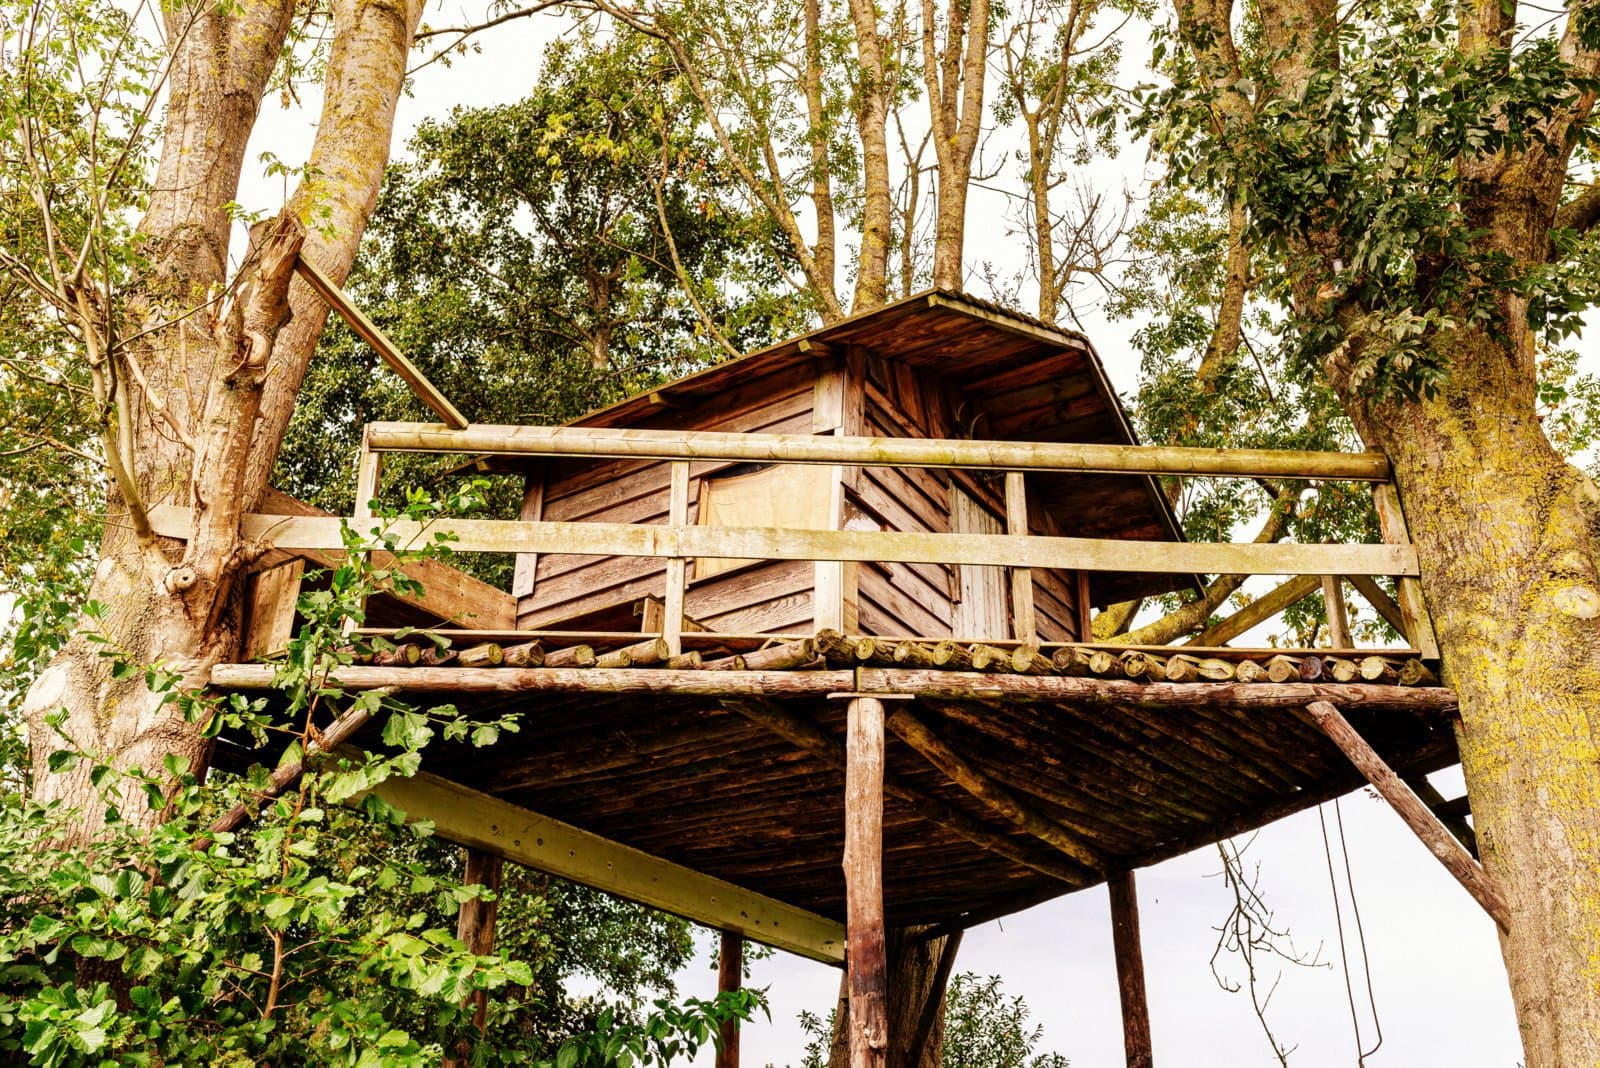 Wooden tree house built on a platform between two trees